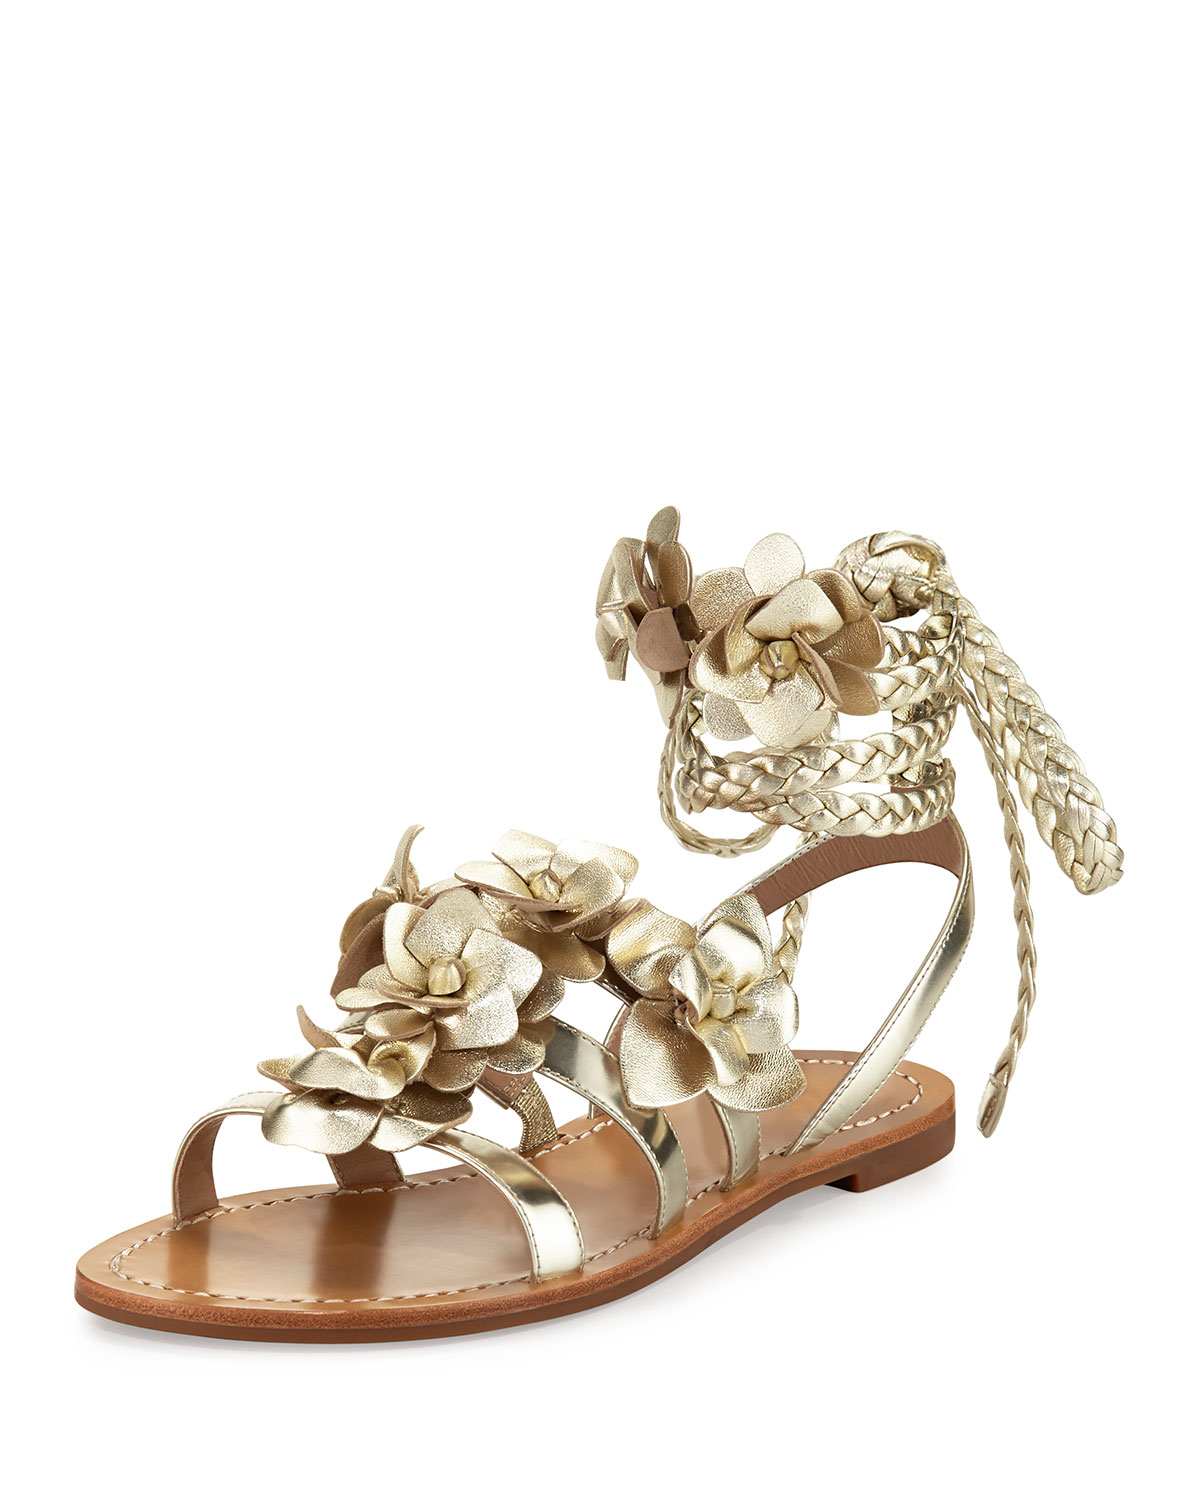 6fd8e740b07a4 Tory Burch Blossom Leather Gladiator Sandal